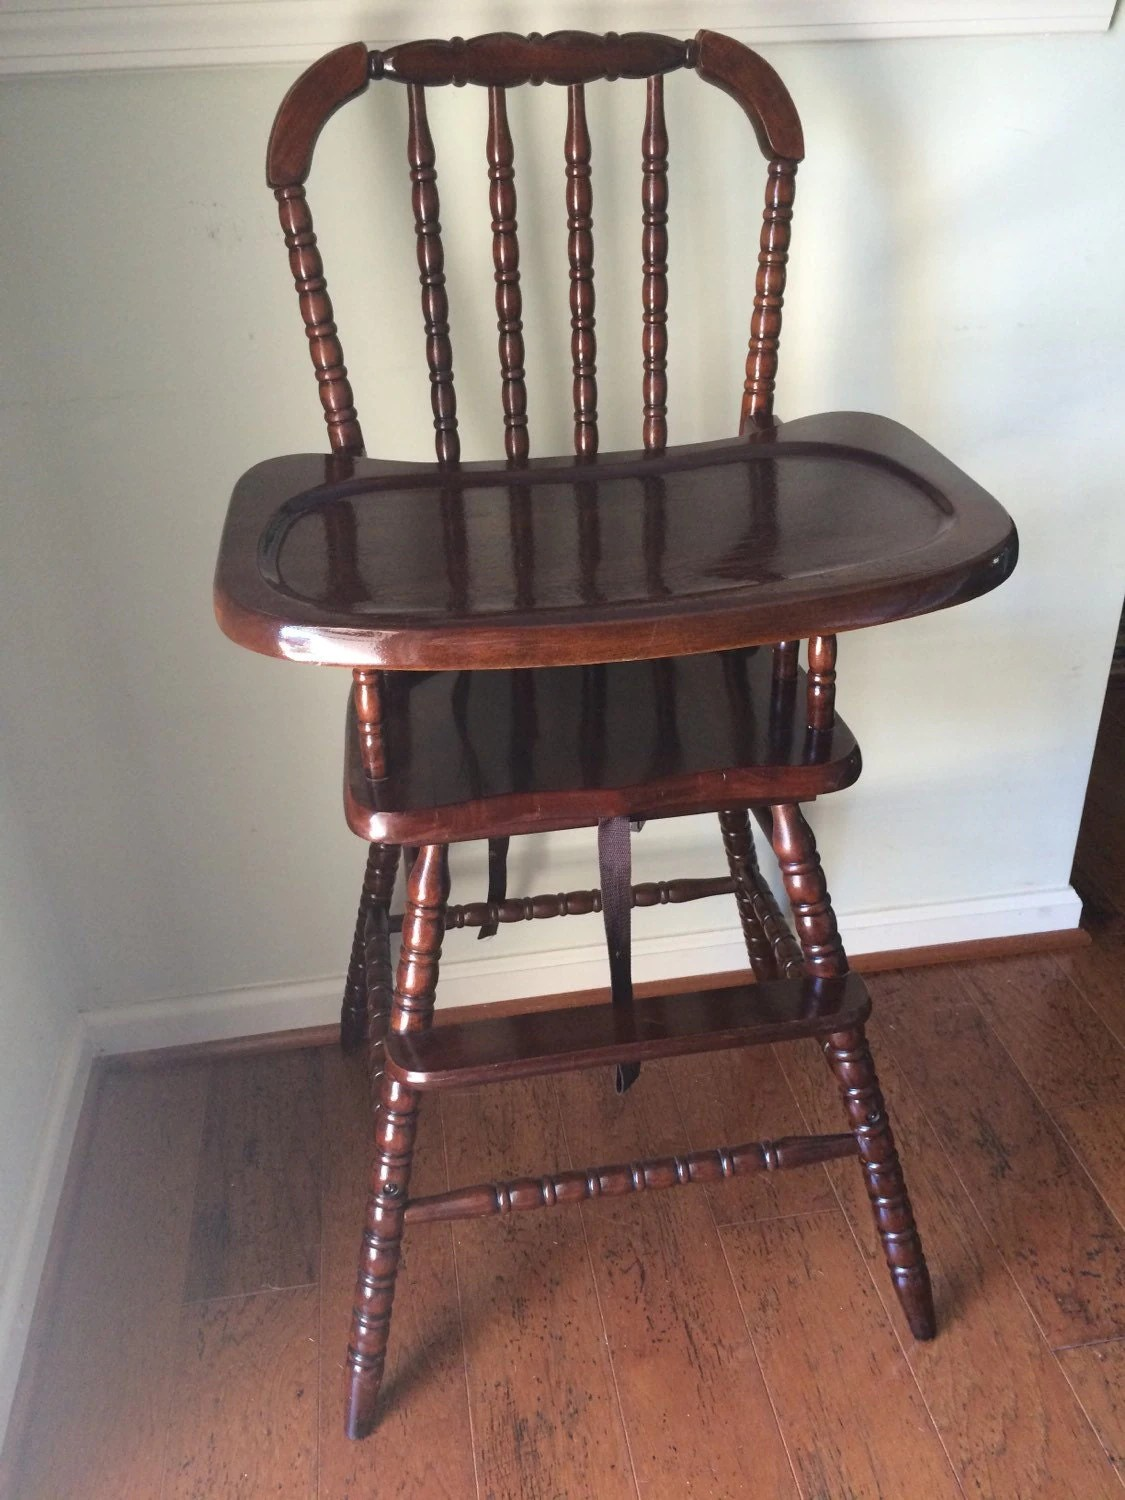 Antique Wooden Chair Vintage Wooden High Chair Jenny Lind Antique High Chair